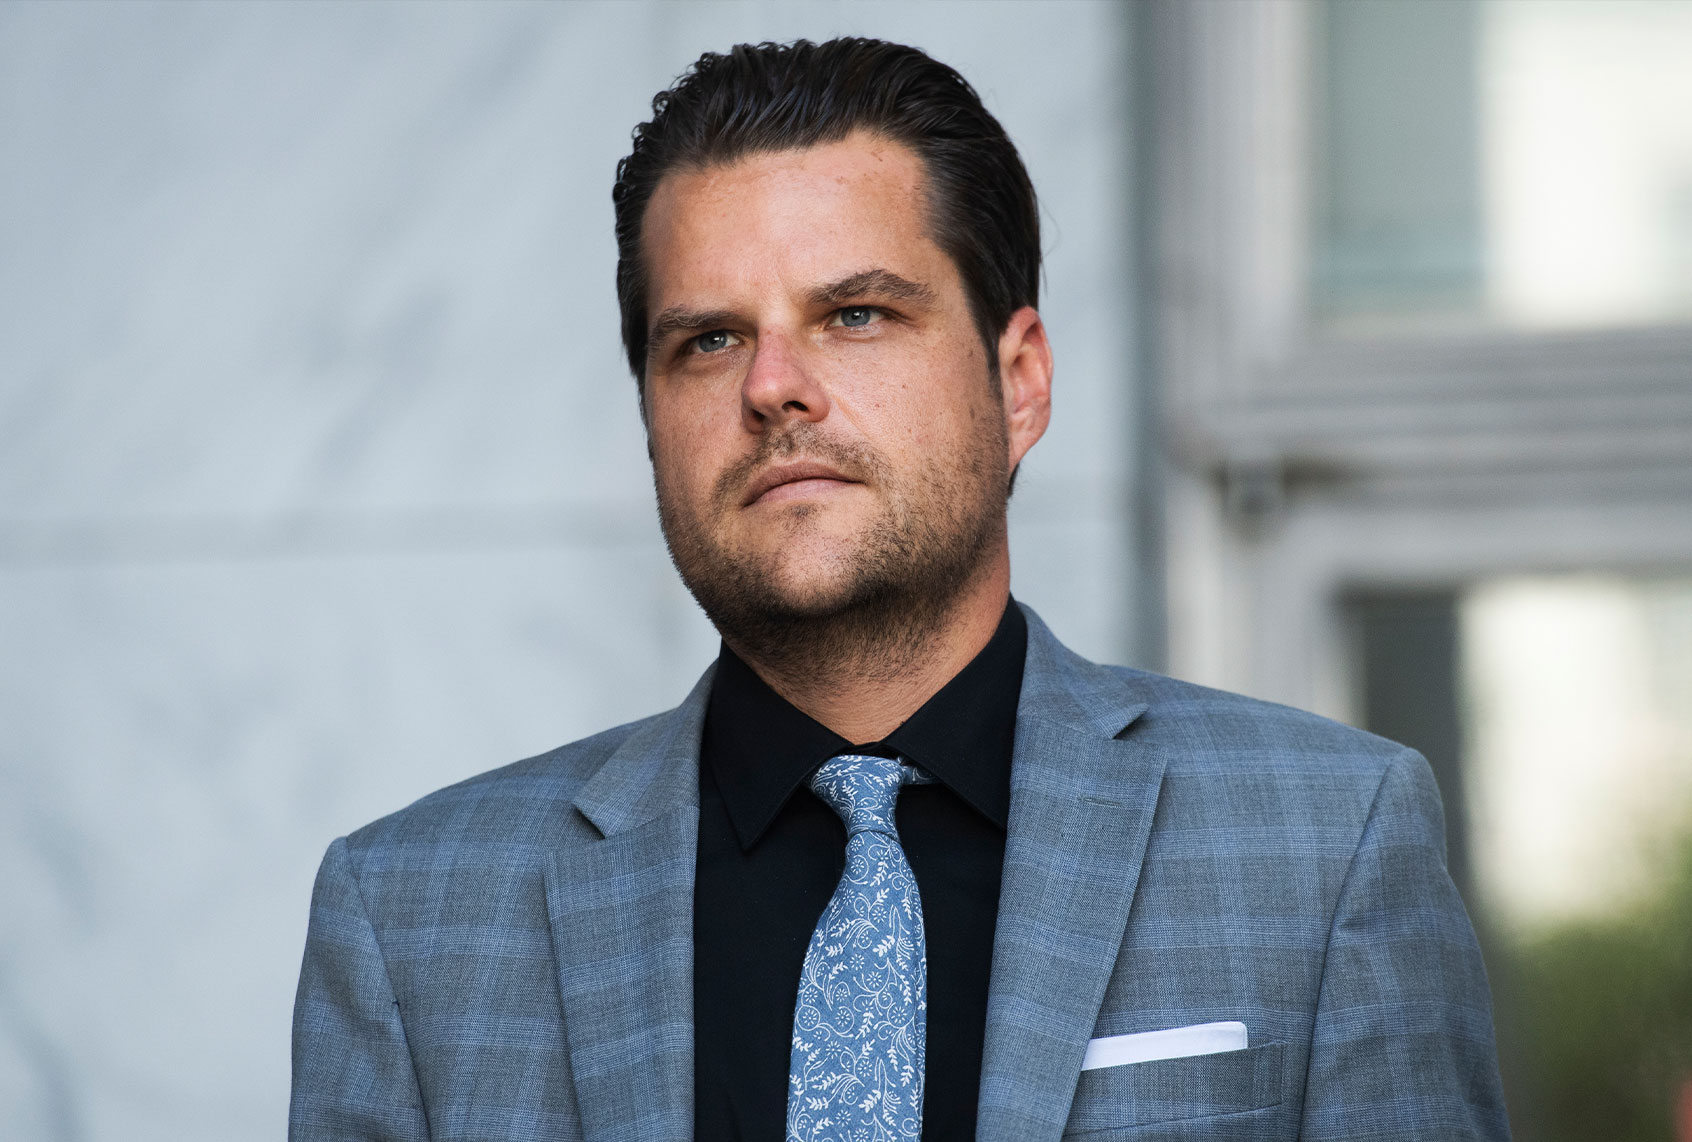 Gaetz probed on alleged payments for sex and taking